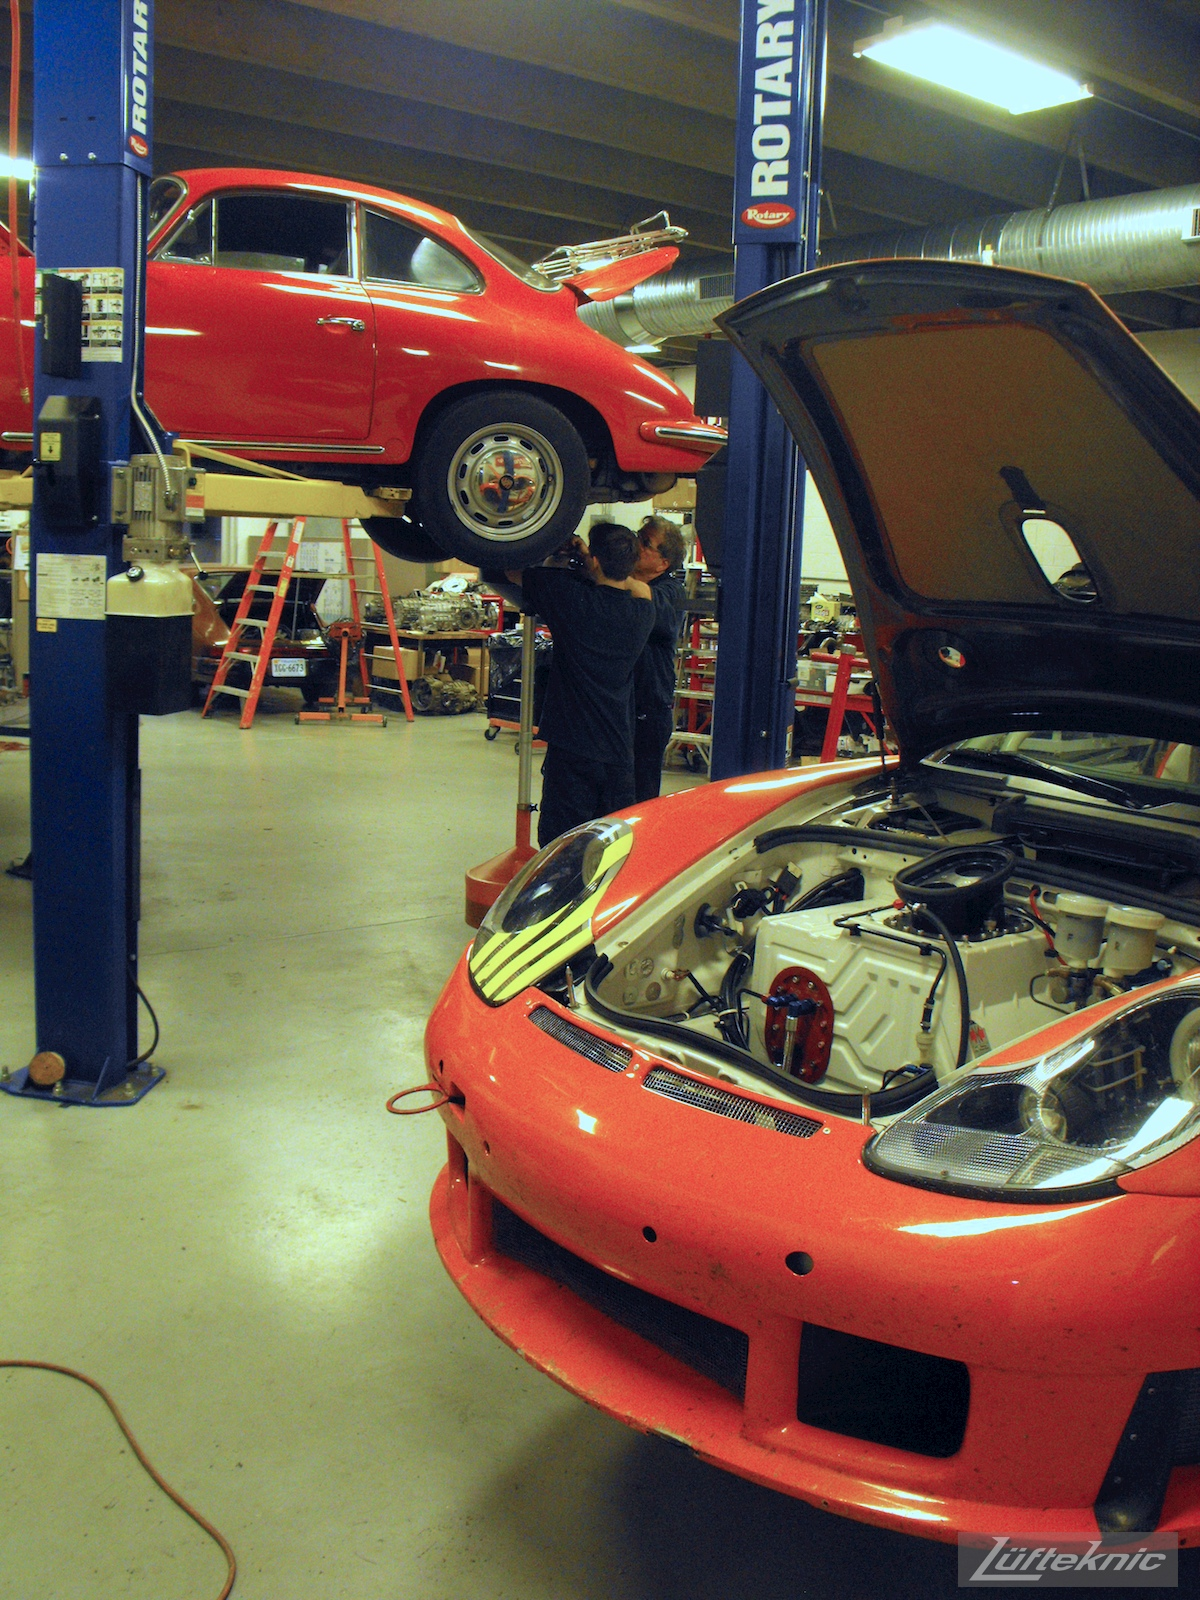 An orange Porsche RSR race car on the lift with a red 356 being worked on in the background.